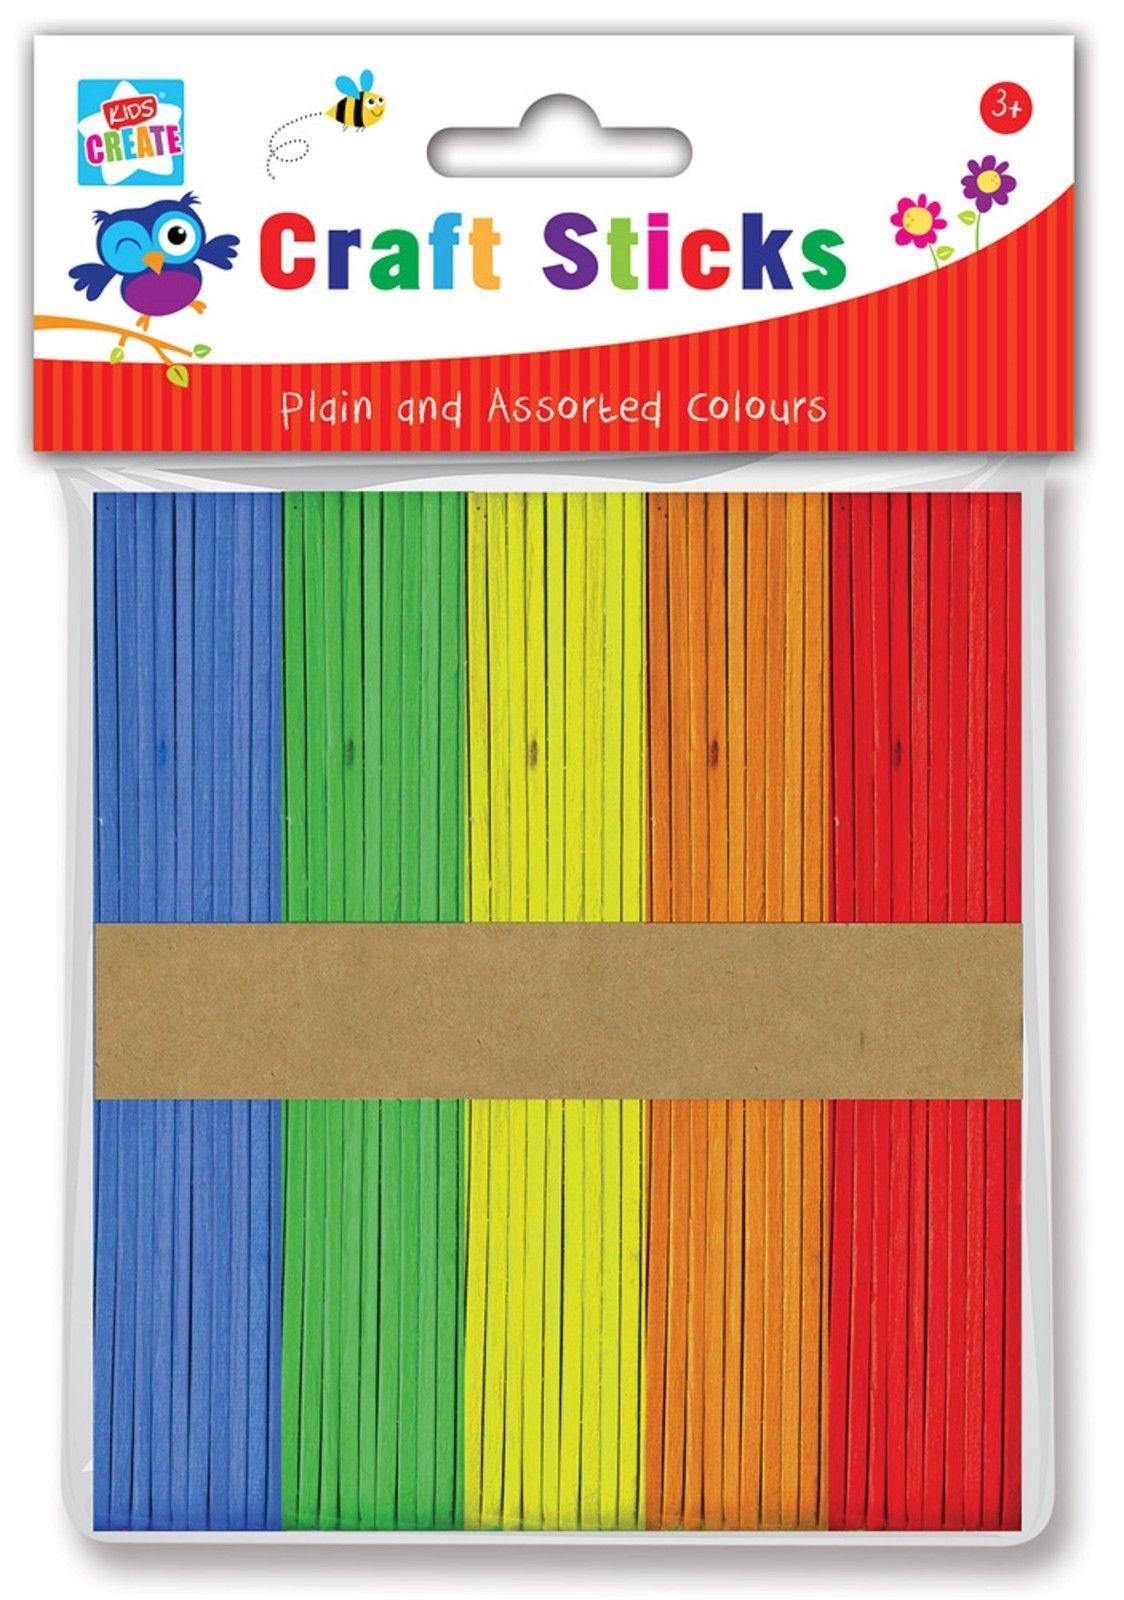 PACK OF APPROX 100 WOODEN LOLLYPOP LOLLY POP CRAFT STICKS COLOUR AND PLAIN MIXED